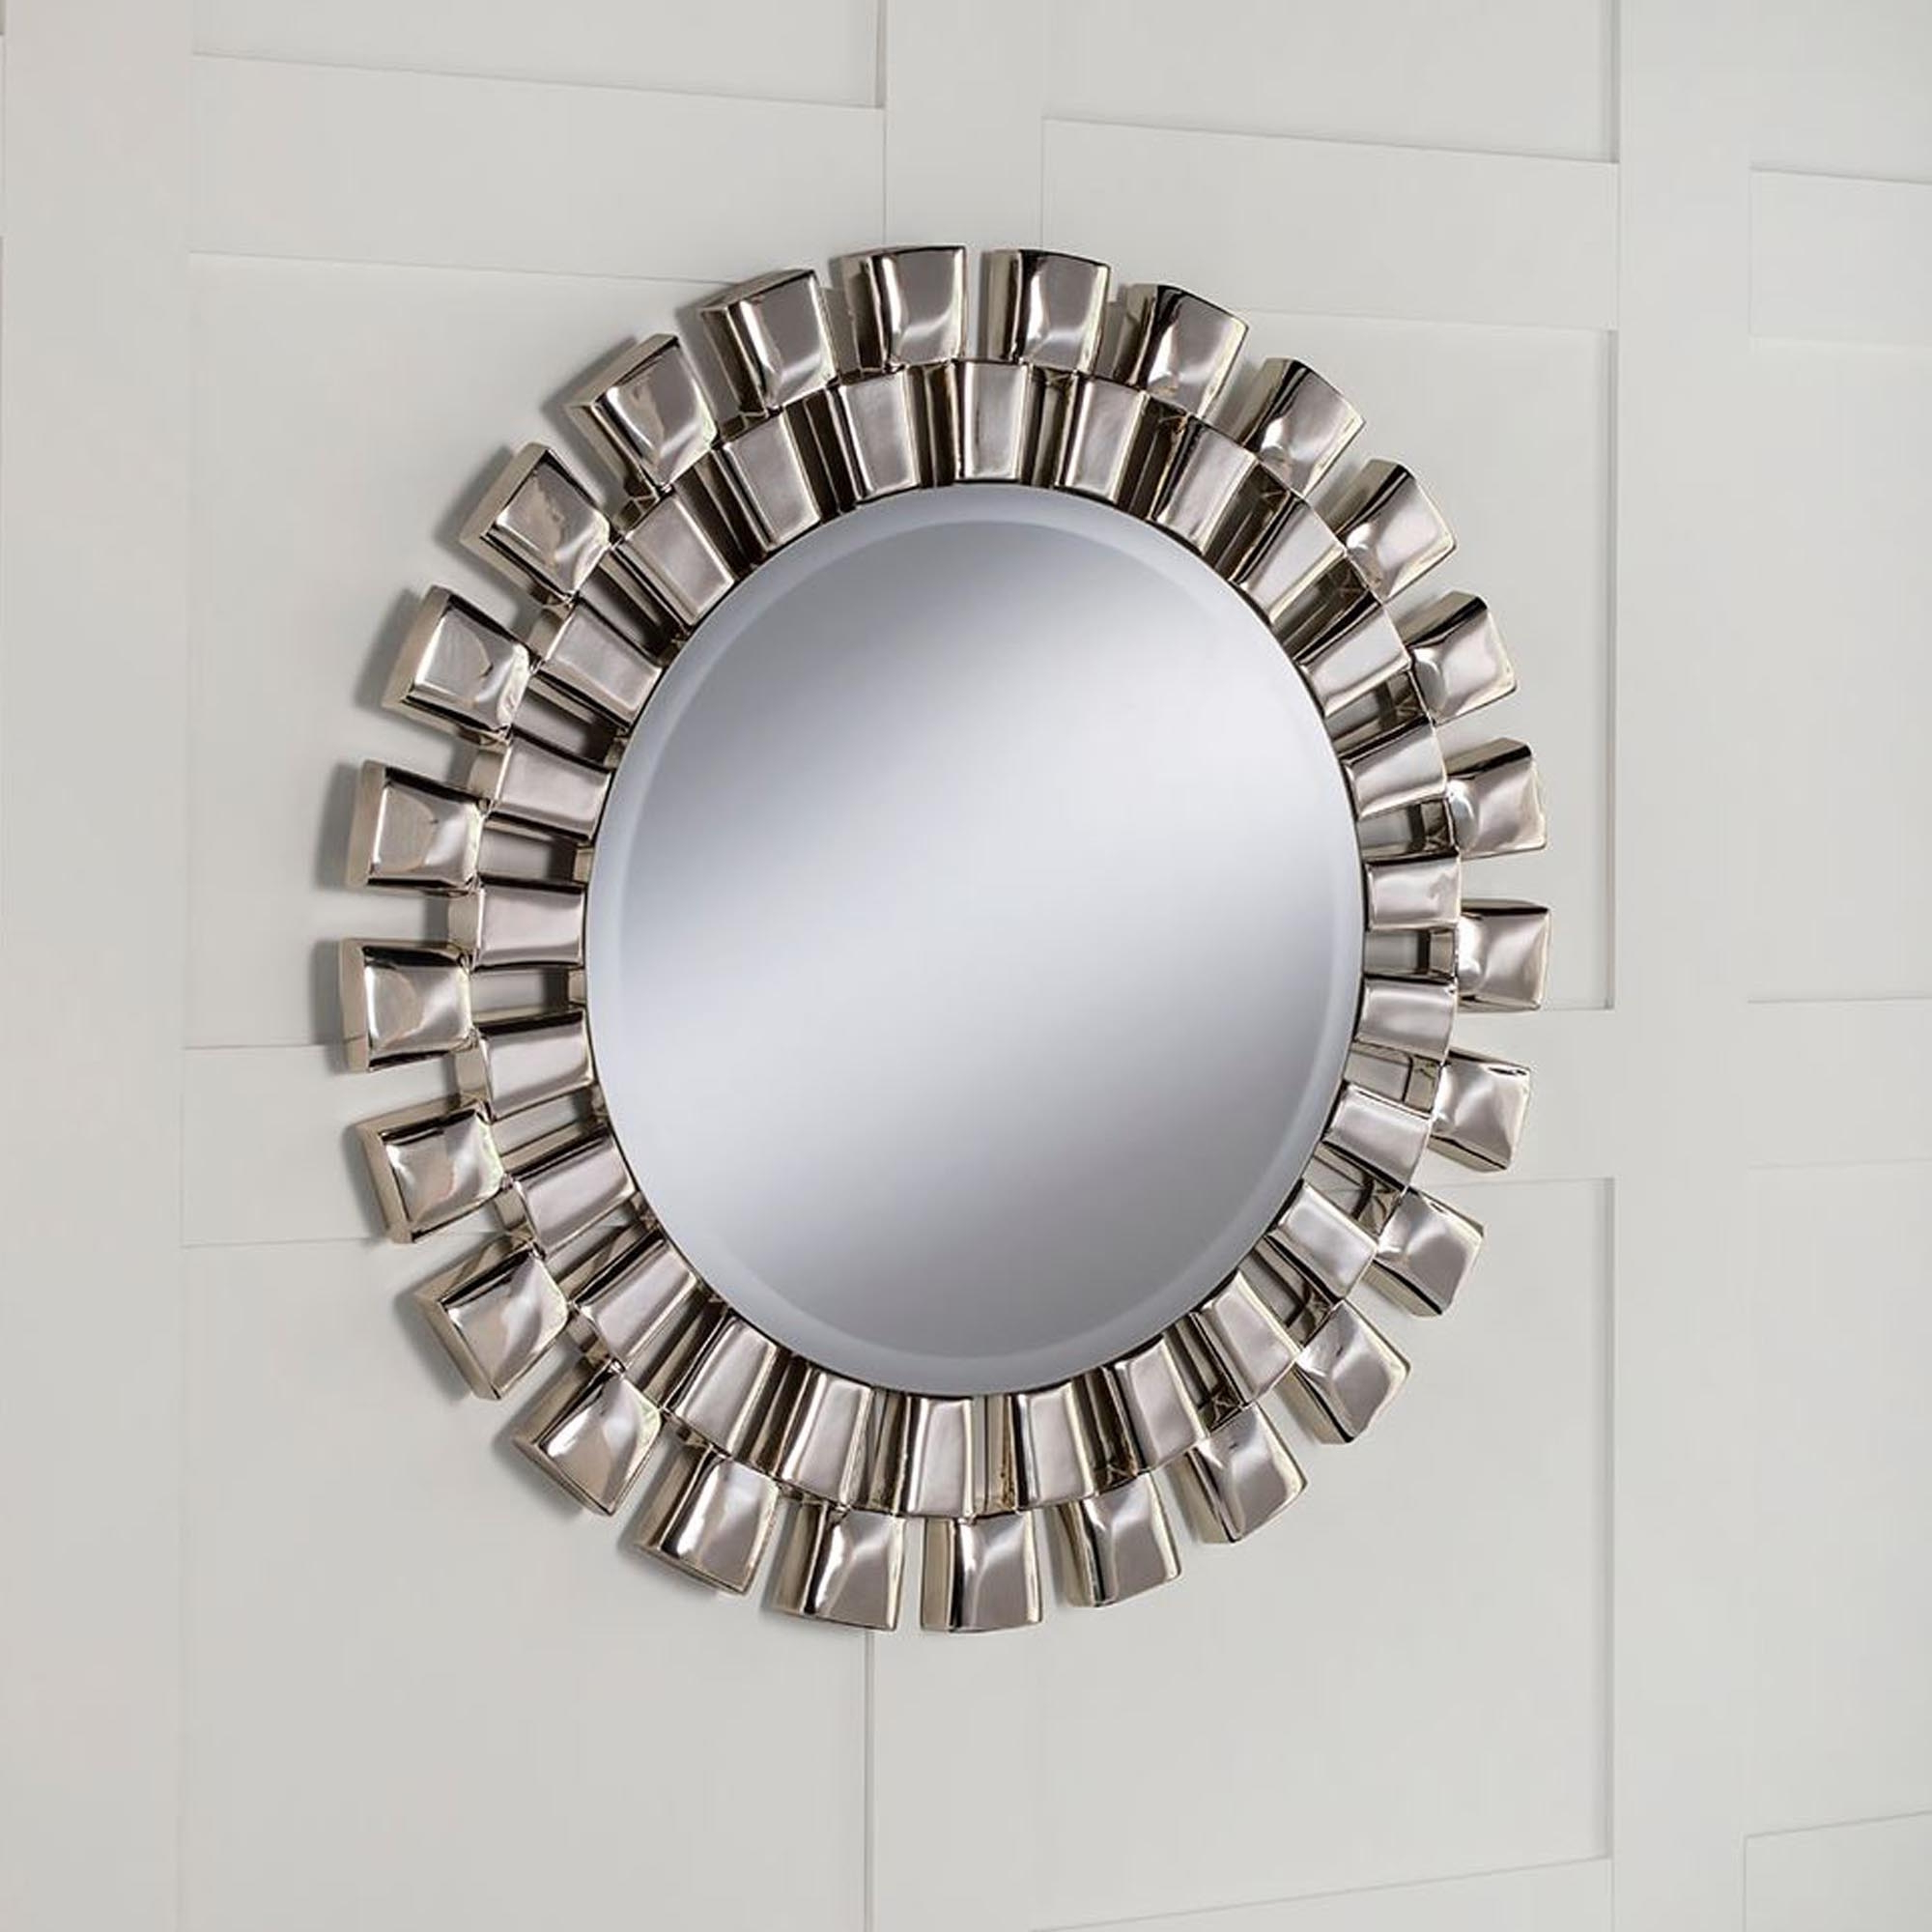 Round Contemporary Chrome Silver Wall Mirror Intended For Widely Used Chrome Wall Mirrors (View 2 of 20)